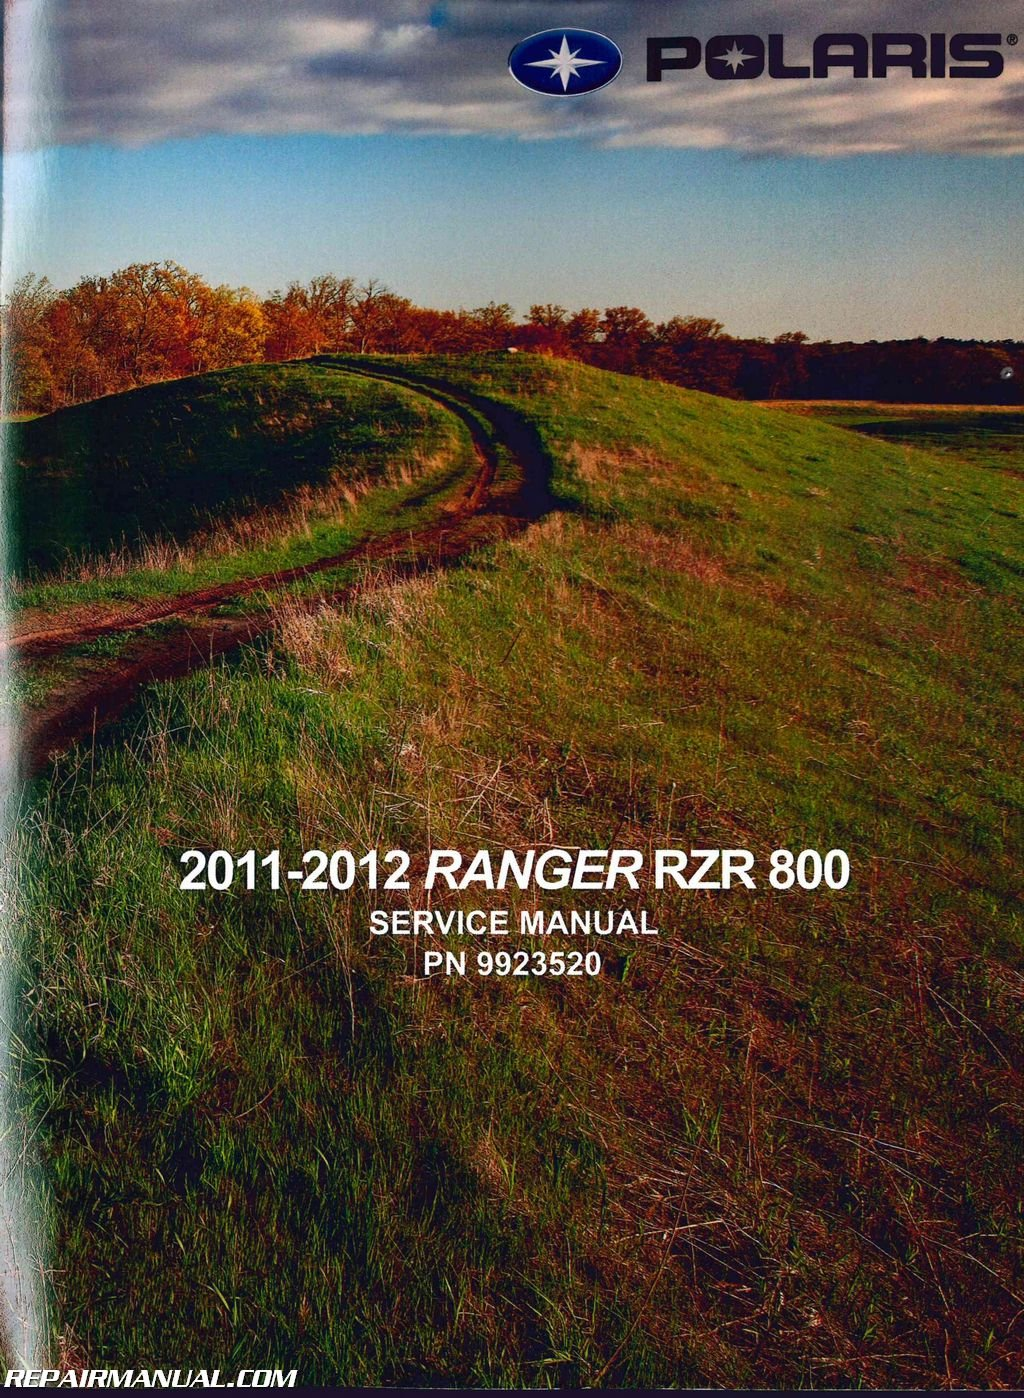 2012 Polaris Ranger RZR 800 Side by Side Service Manual: Manufacturer:  Amazon.com: Books